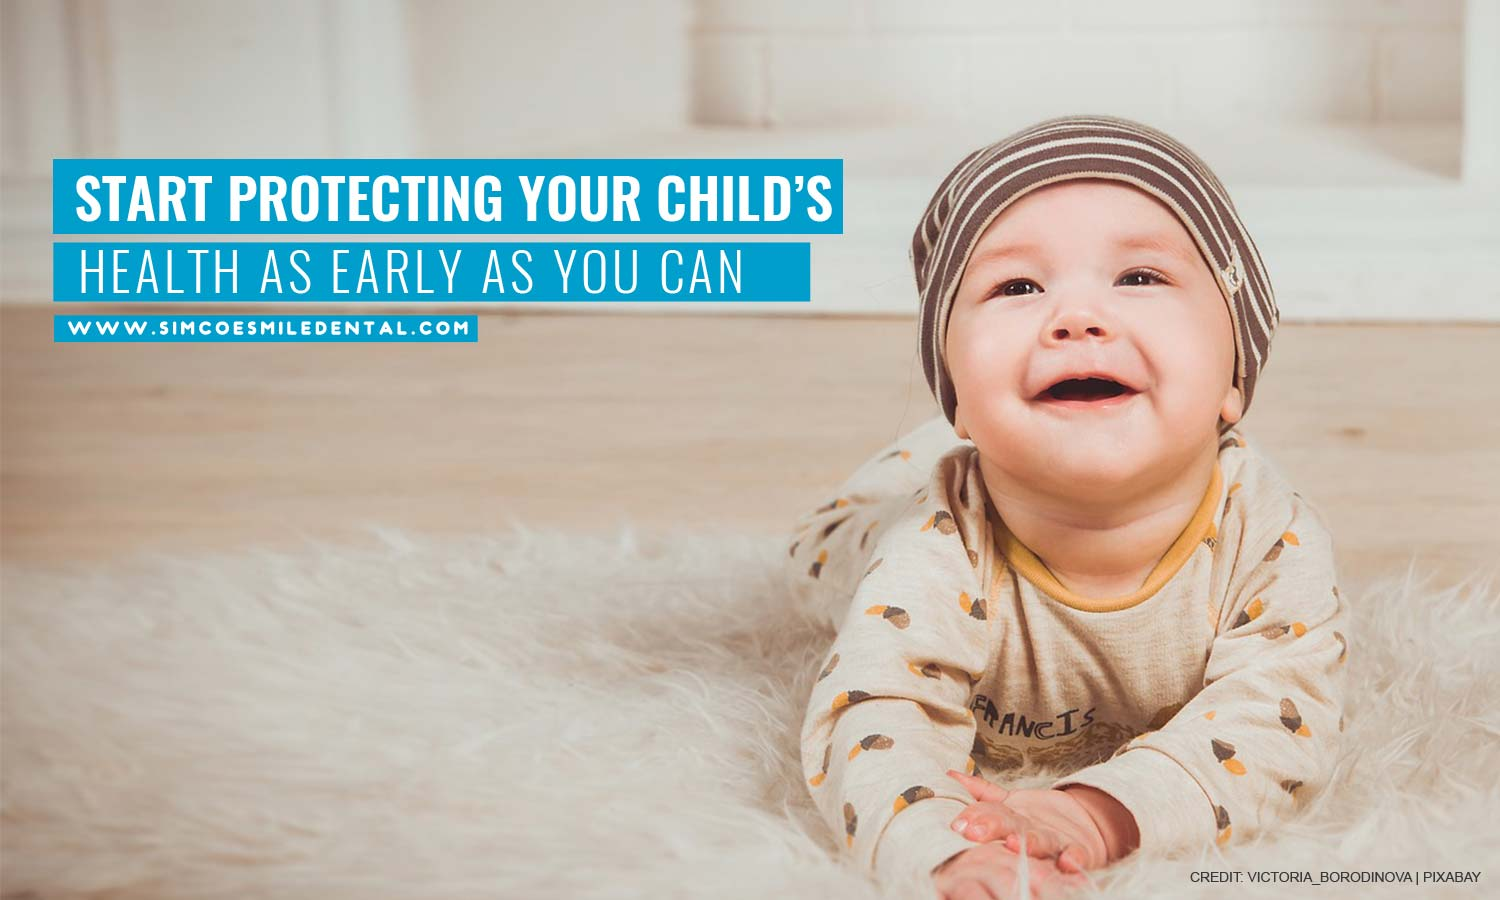 Start-protecting-your-childs-health-as-early-as-you-can How to Get Your Kid Excited for a Dental Visit